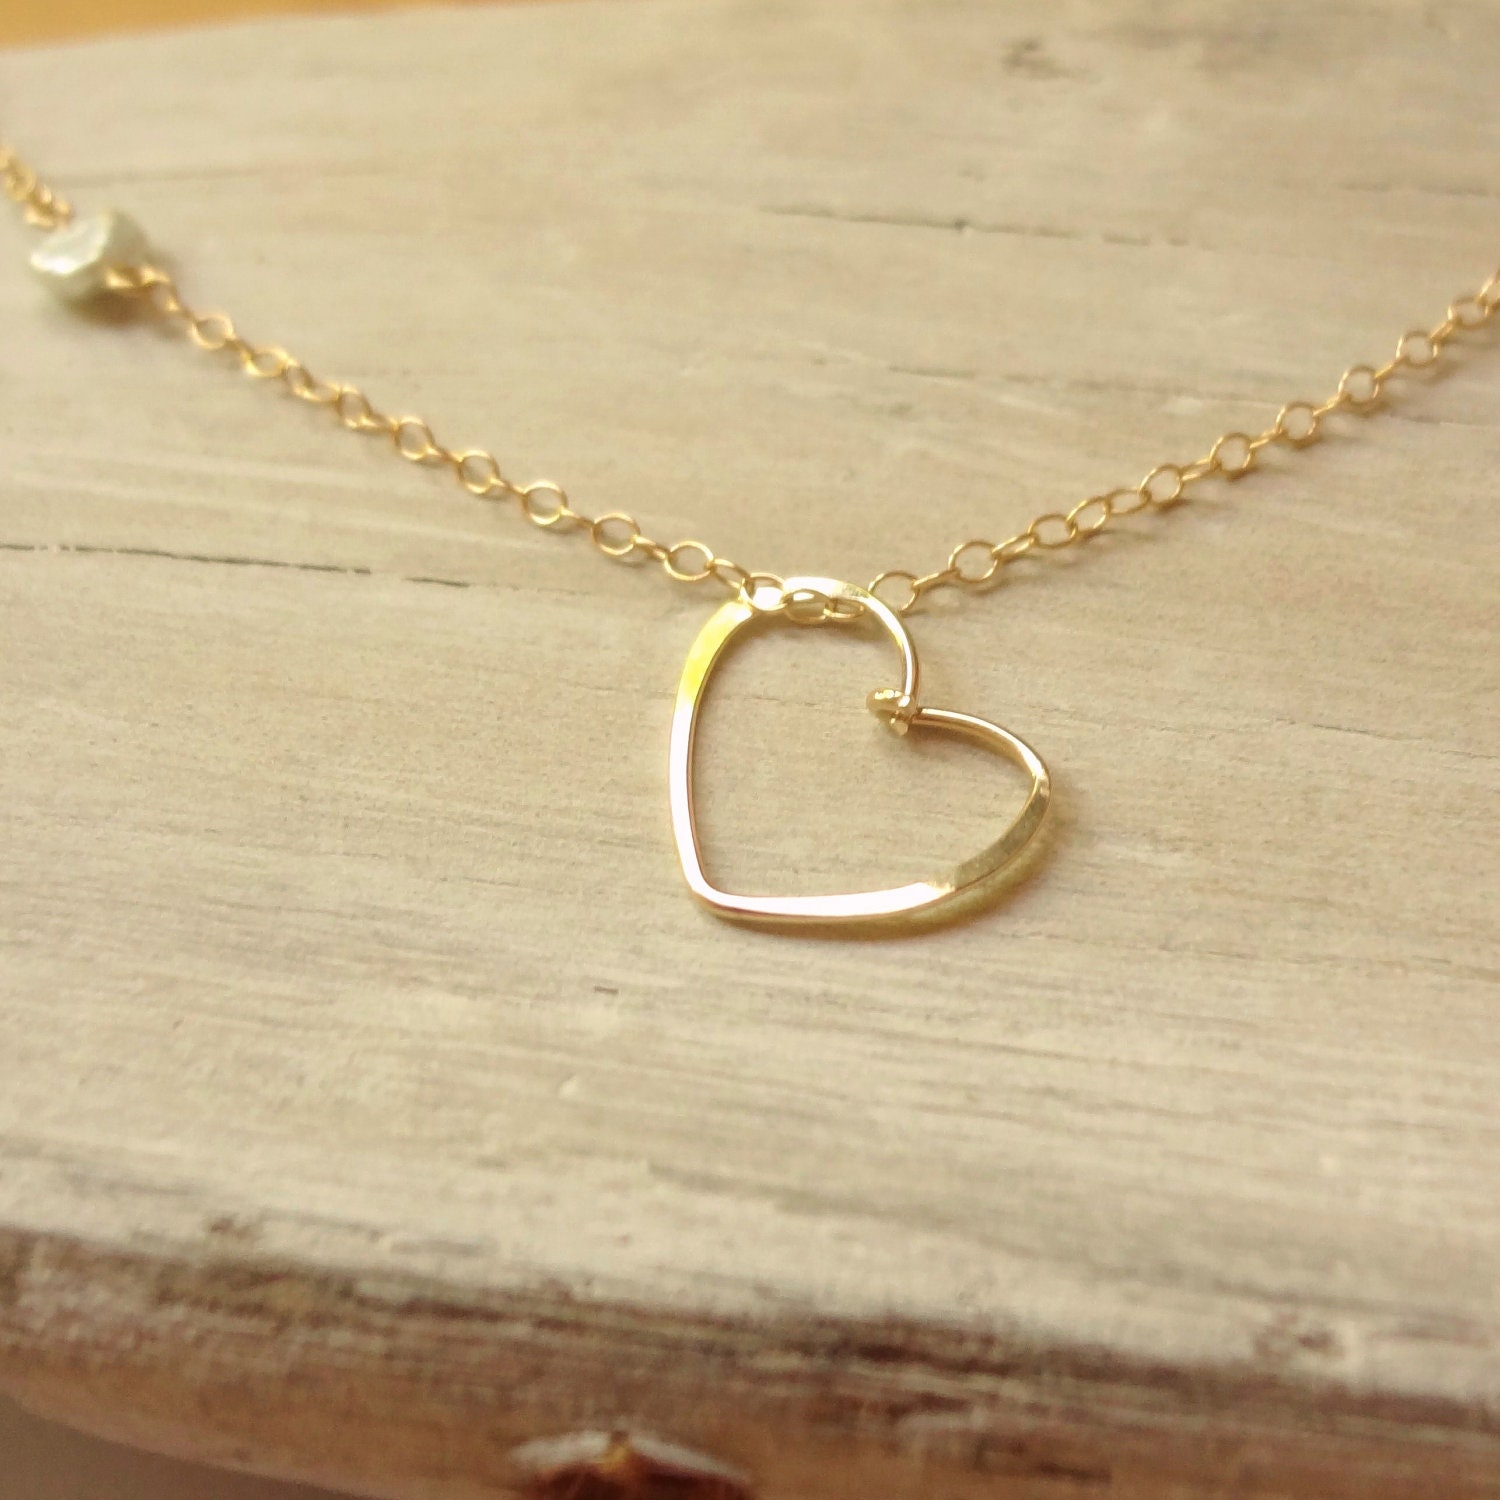 products of single earrings side cartilage heart lovely chain original double gold chains collections earring